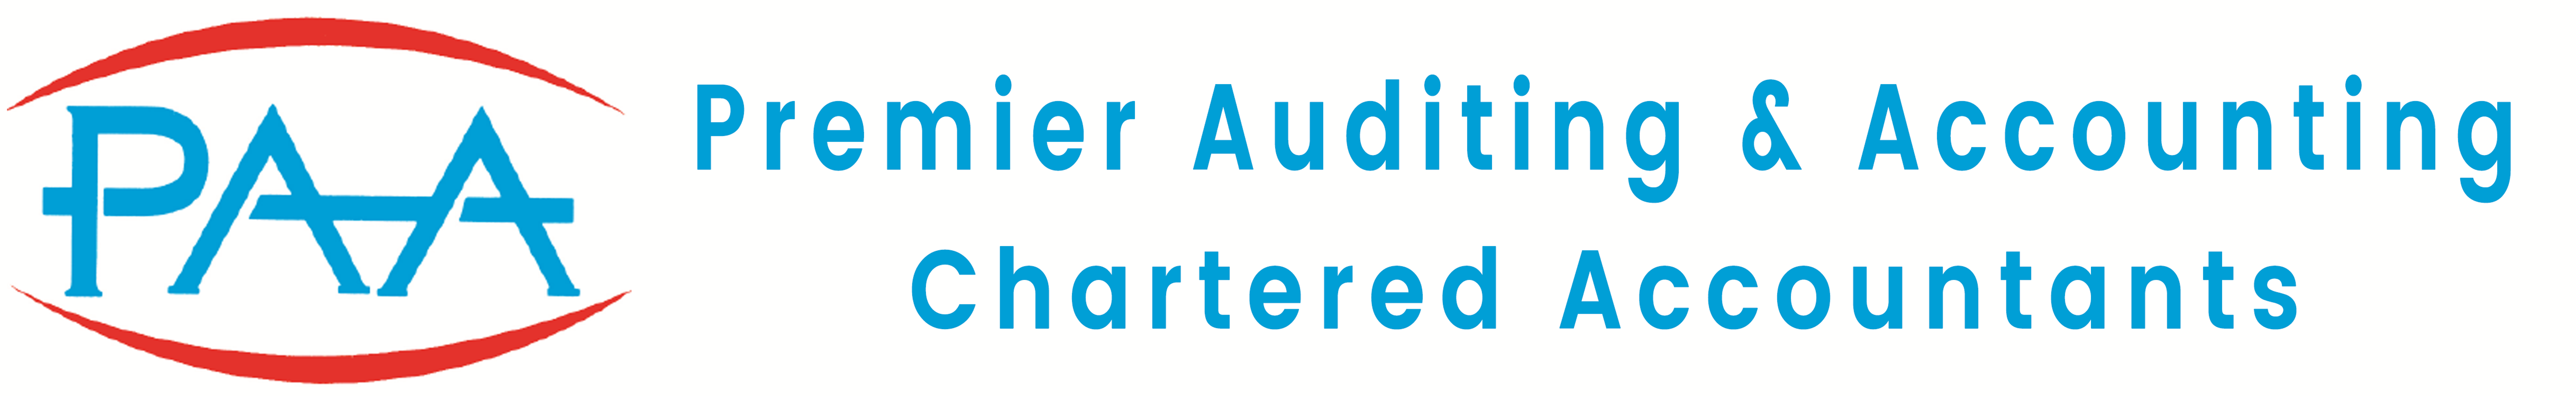 premier auditing and accounting